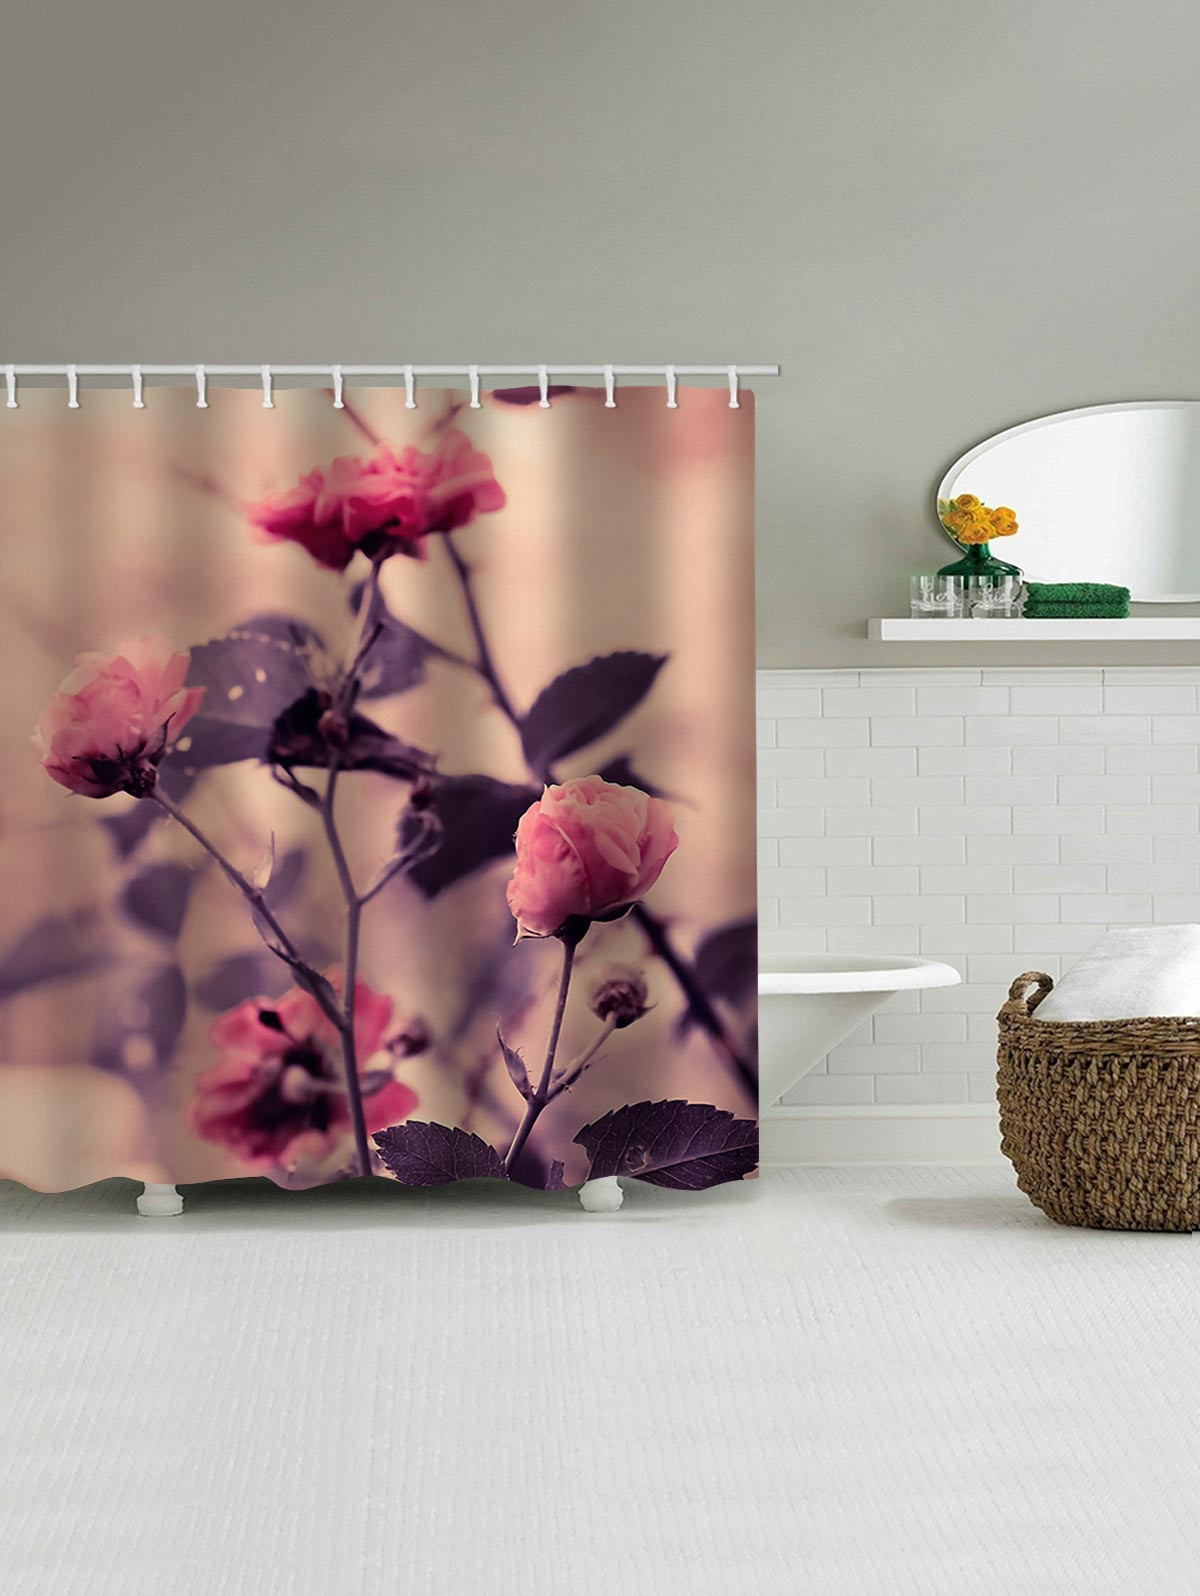 Flower Branch Print Waterproof Bathroom Shower Curtain